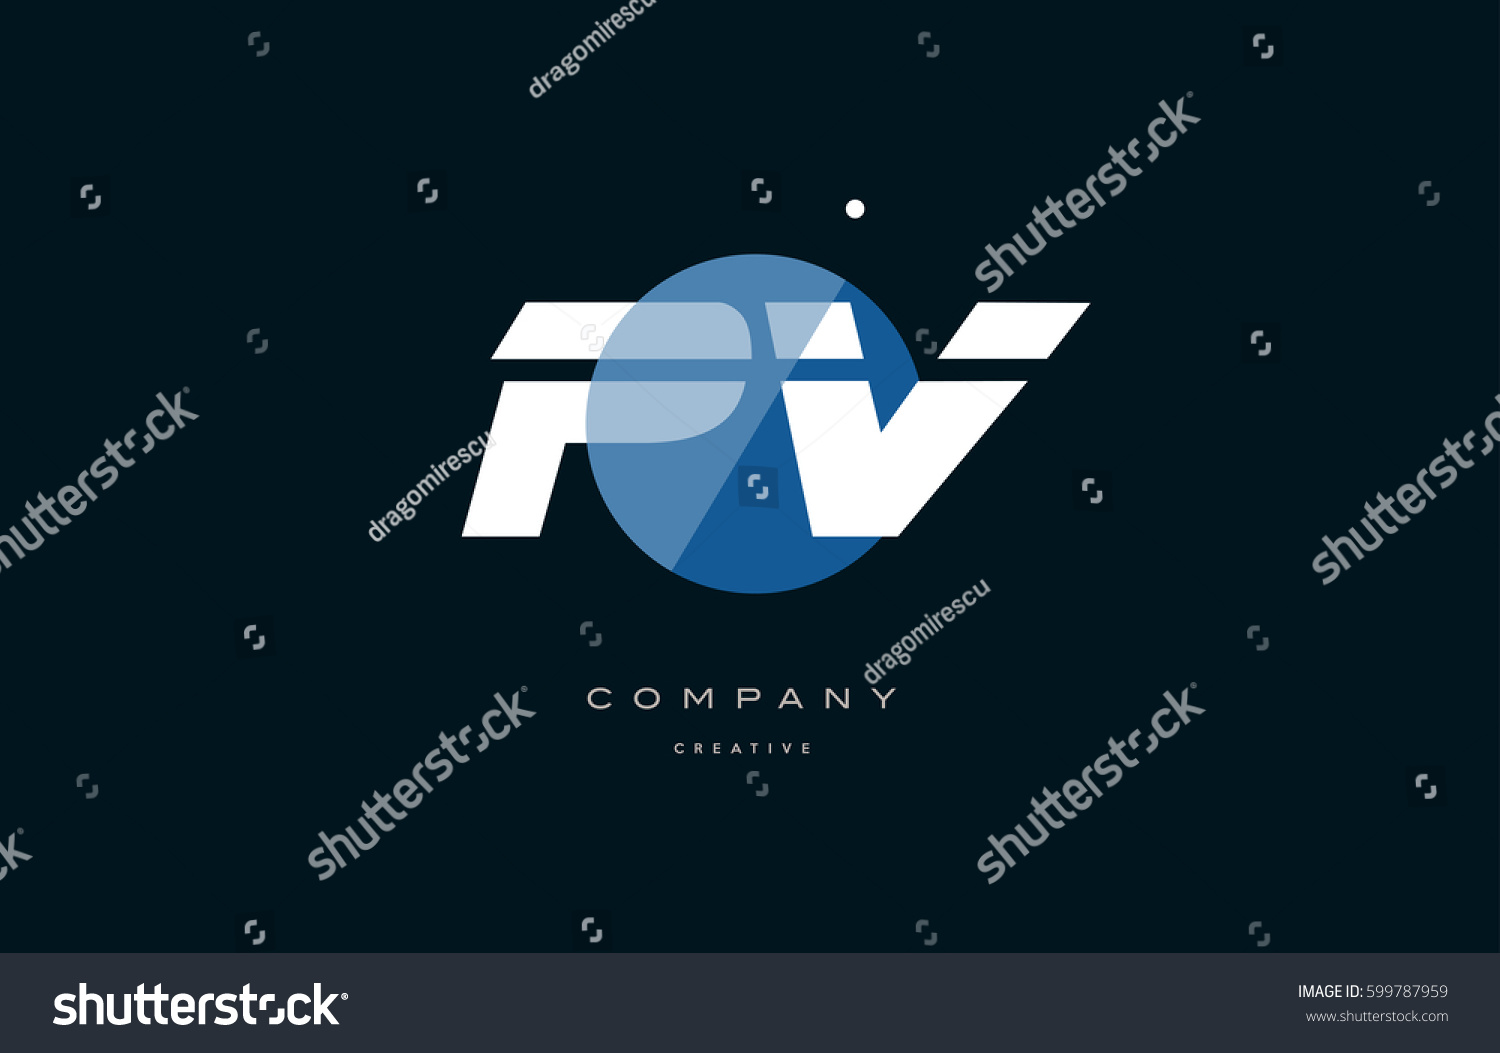 Pv p v blue circle dot stock vector 599787959 shutterstock pv p v blue circle dot big font alphabet company letter logo white design vector icon template buycottarizona Image collections